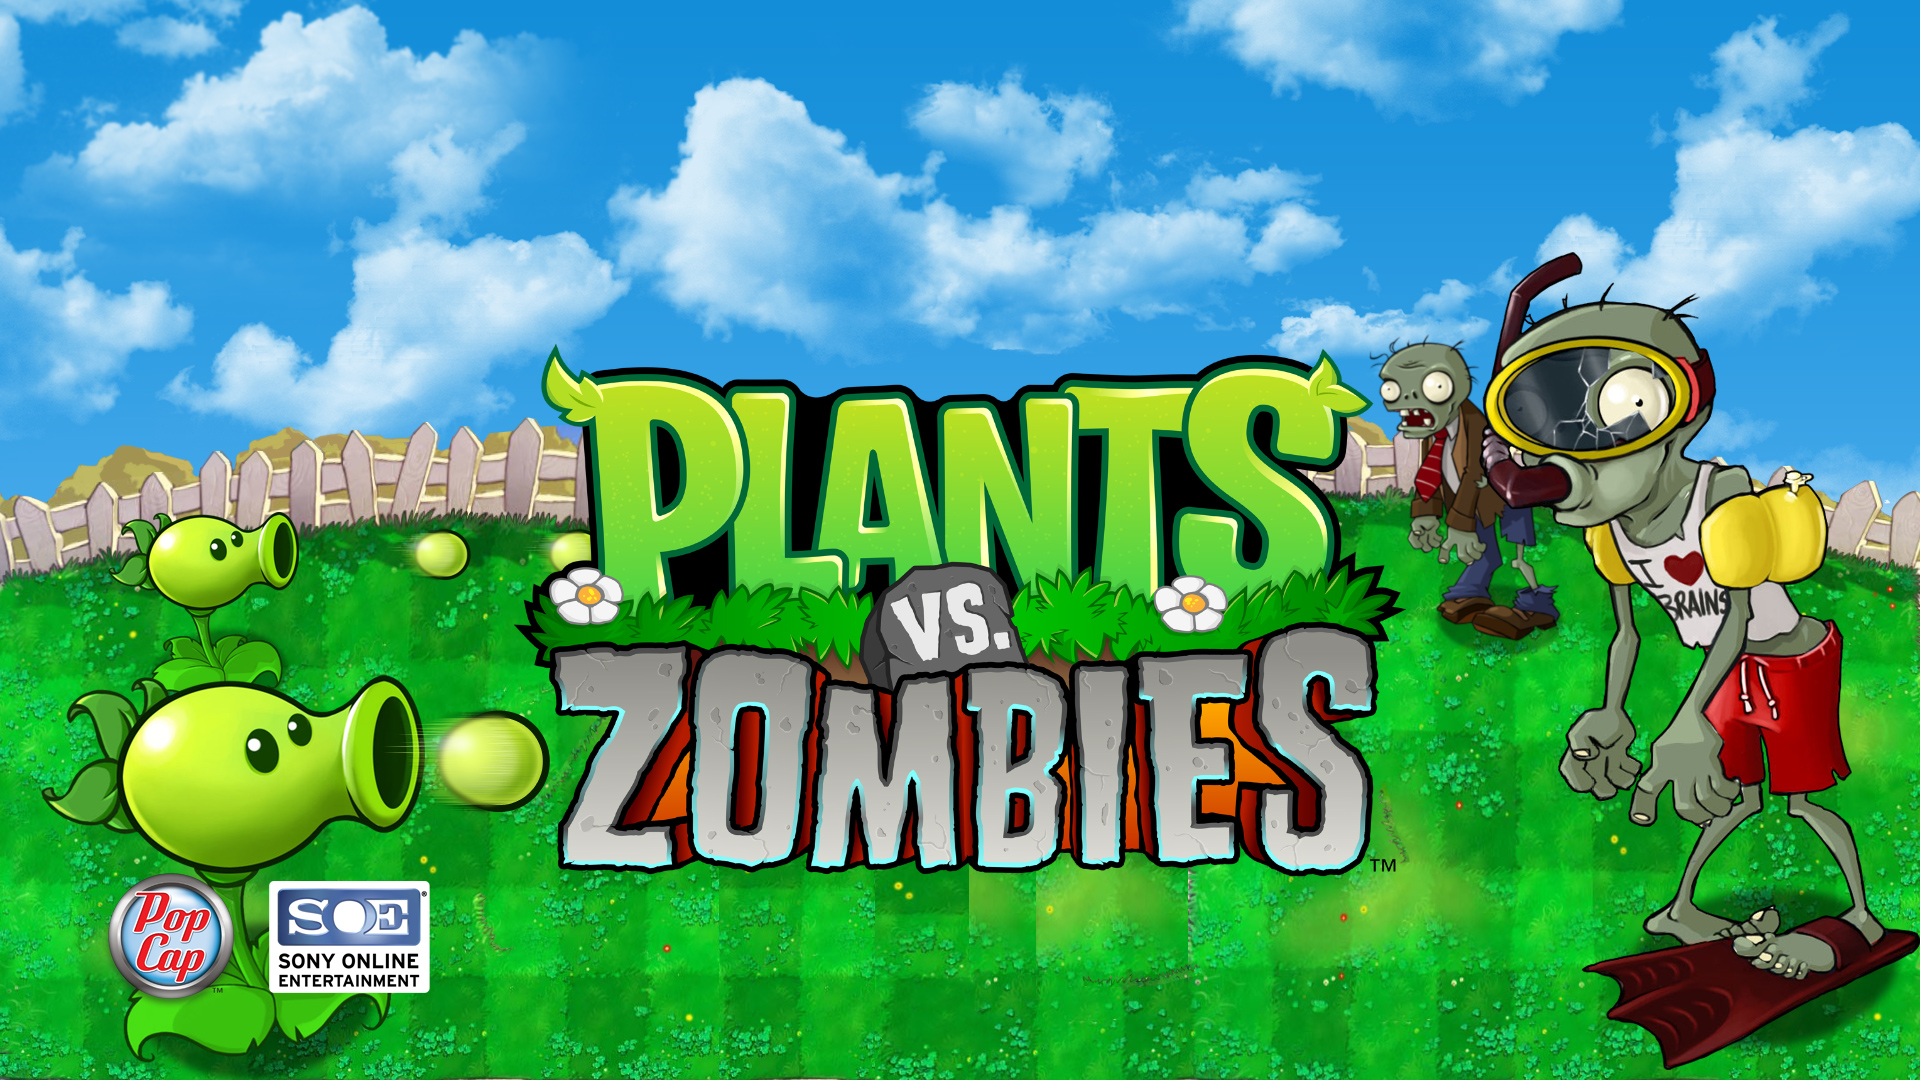 plants vs zombies 2 pc crack full version free download